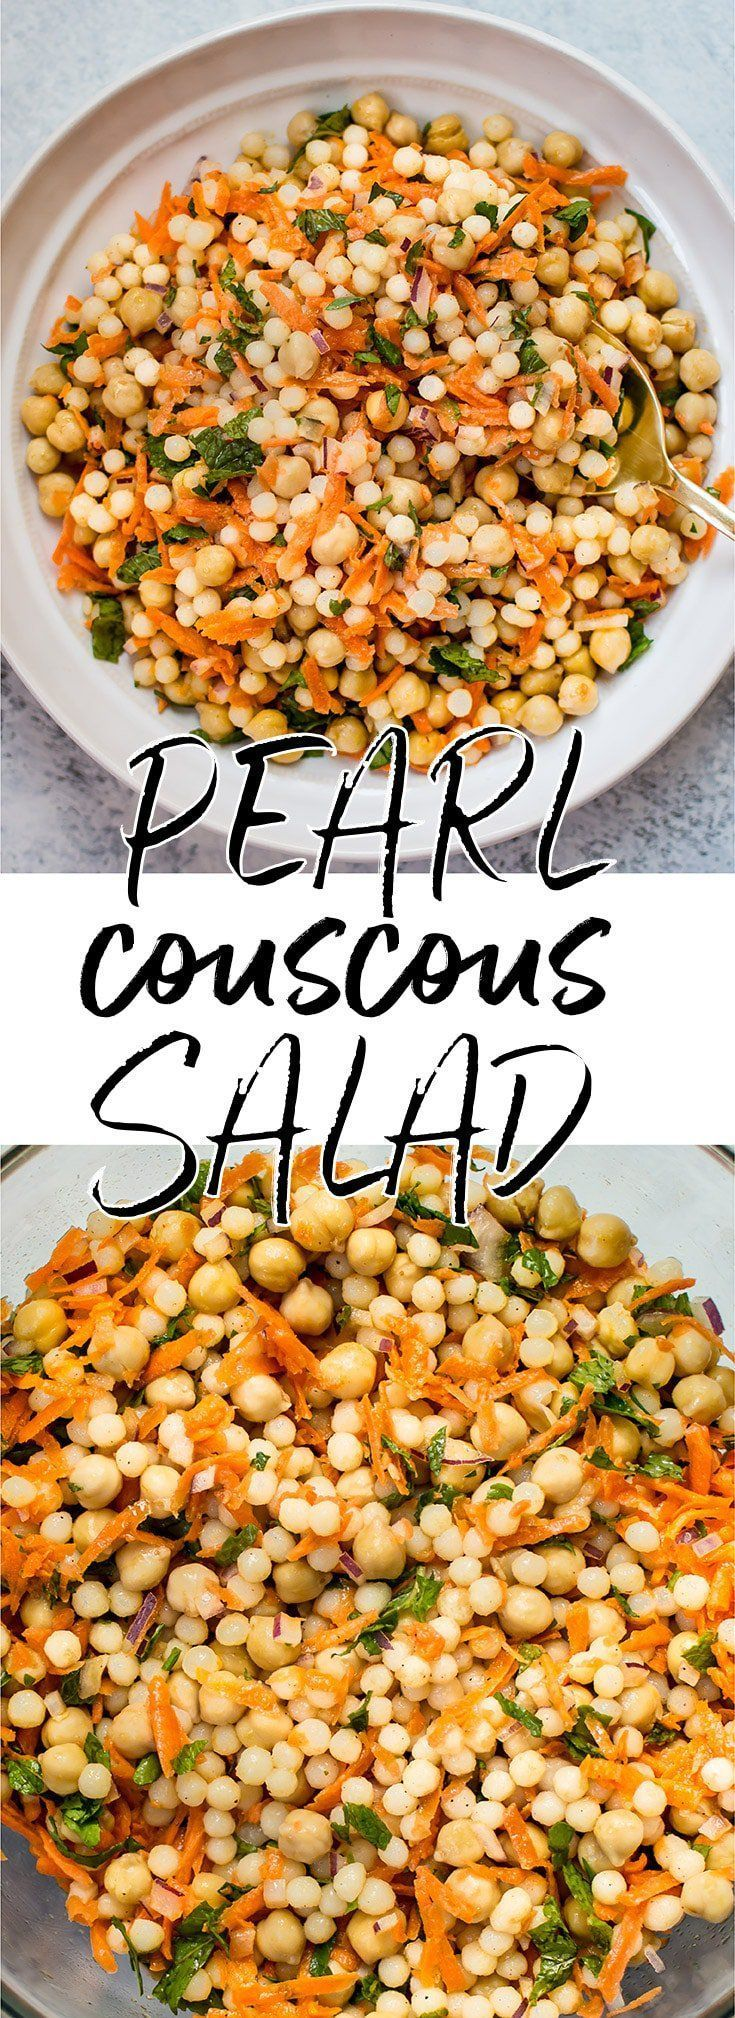 This vegan Israeli couscous salad recipe makes a wonderfully fresh light lunch or side salad. It's satisfying, healthy, and filling. #Israelicouscous #pearlcouscous #veganrecipe